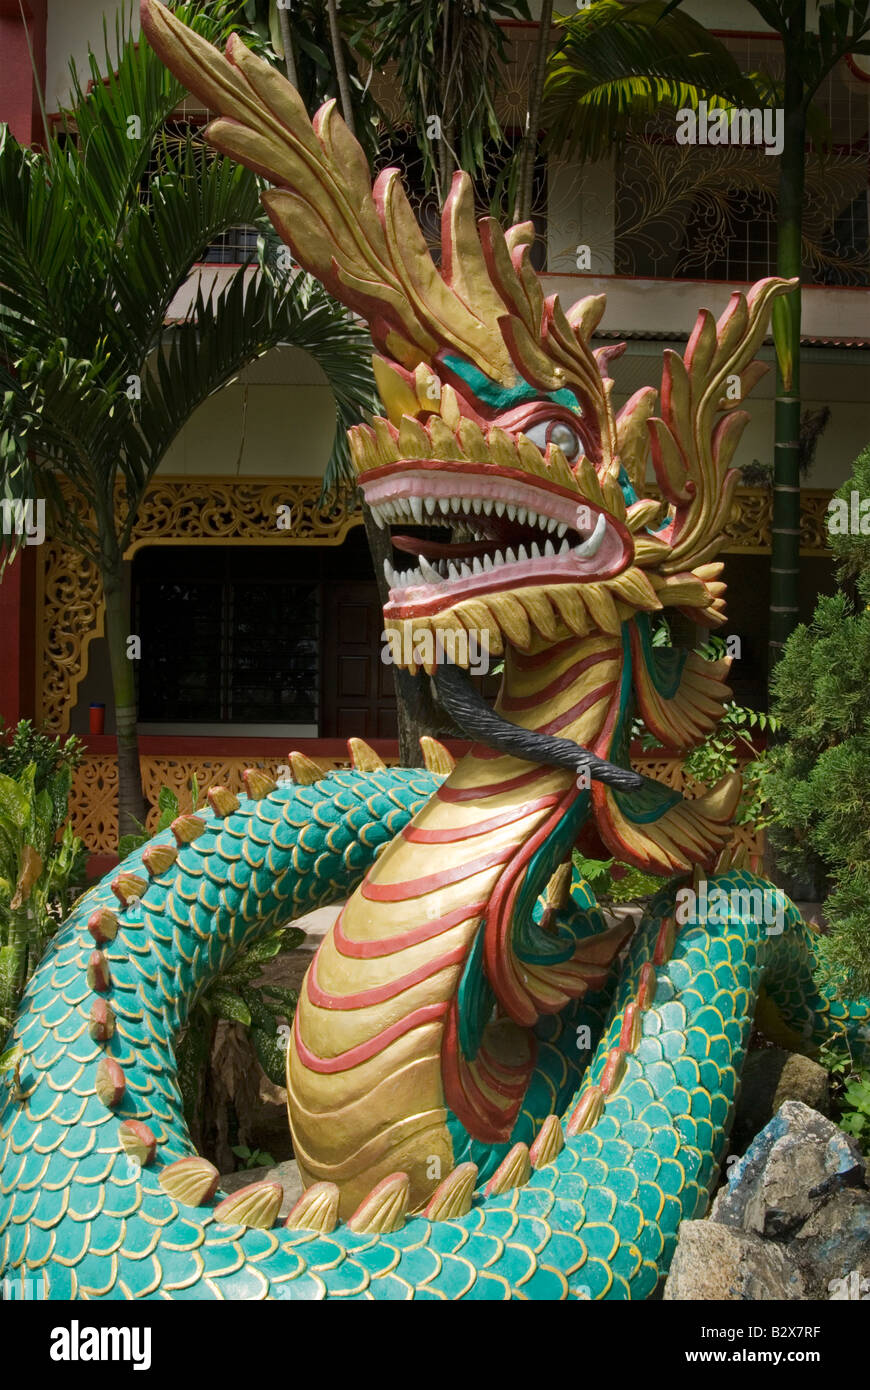 The mythical Naga serpent at the Dhammikarama Burmese Buddhist Temple, Georgetown, Penang, Malaysia - Stock Image